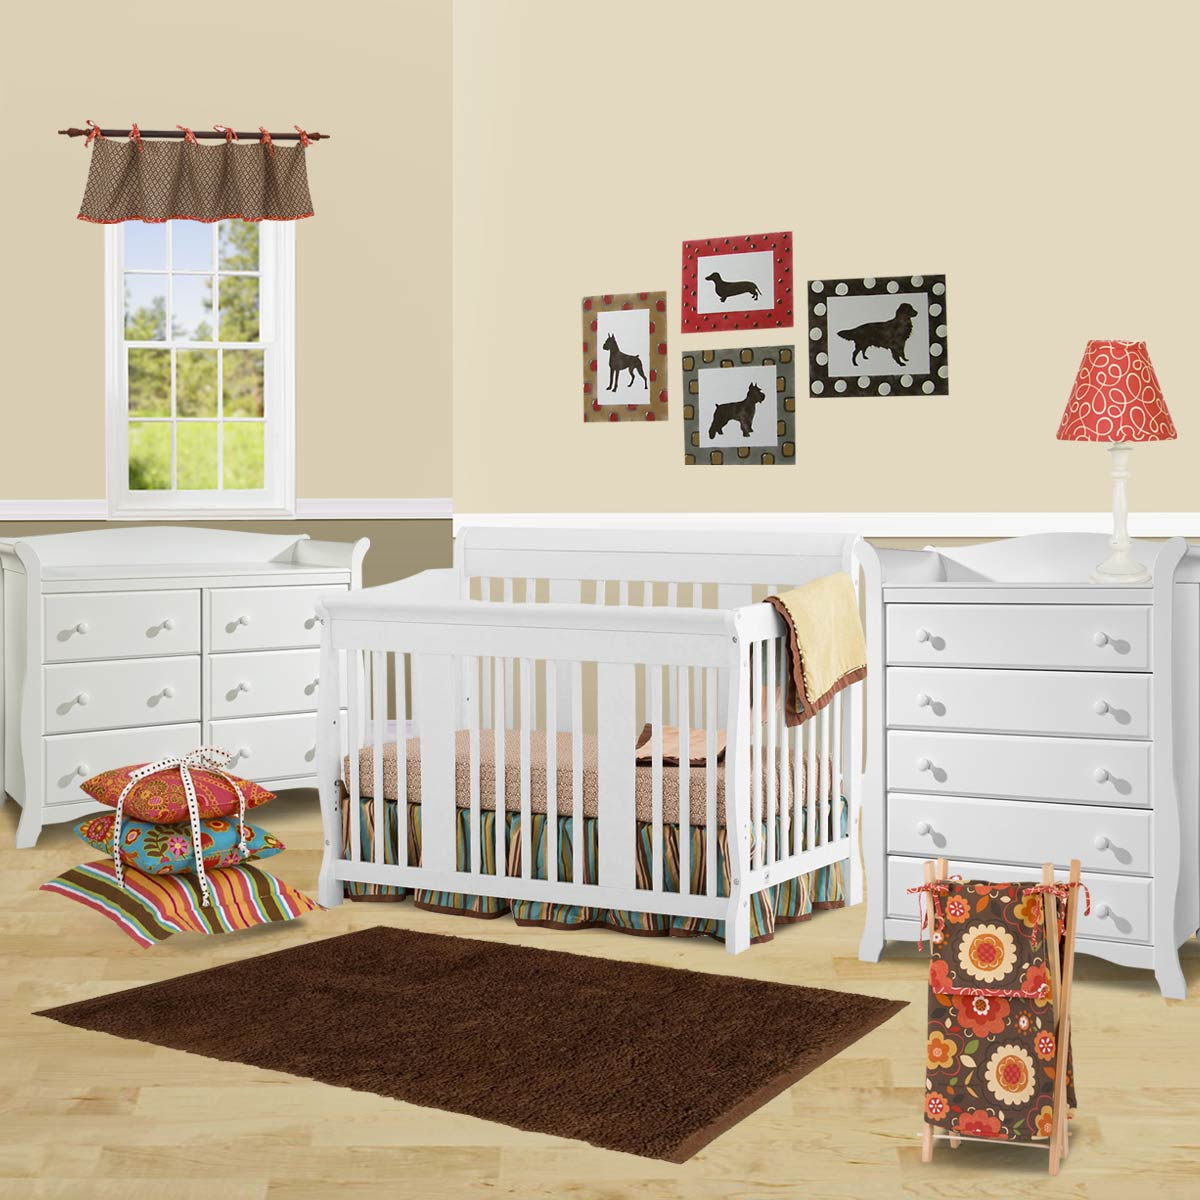 Storkcraft 3 Piece Nursery Set   Tuscany Convertible Crib, Avalon 5 Drawer  Dresser And 6 Drawer Dresser In White FREE SHIPPING